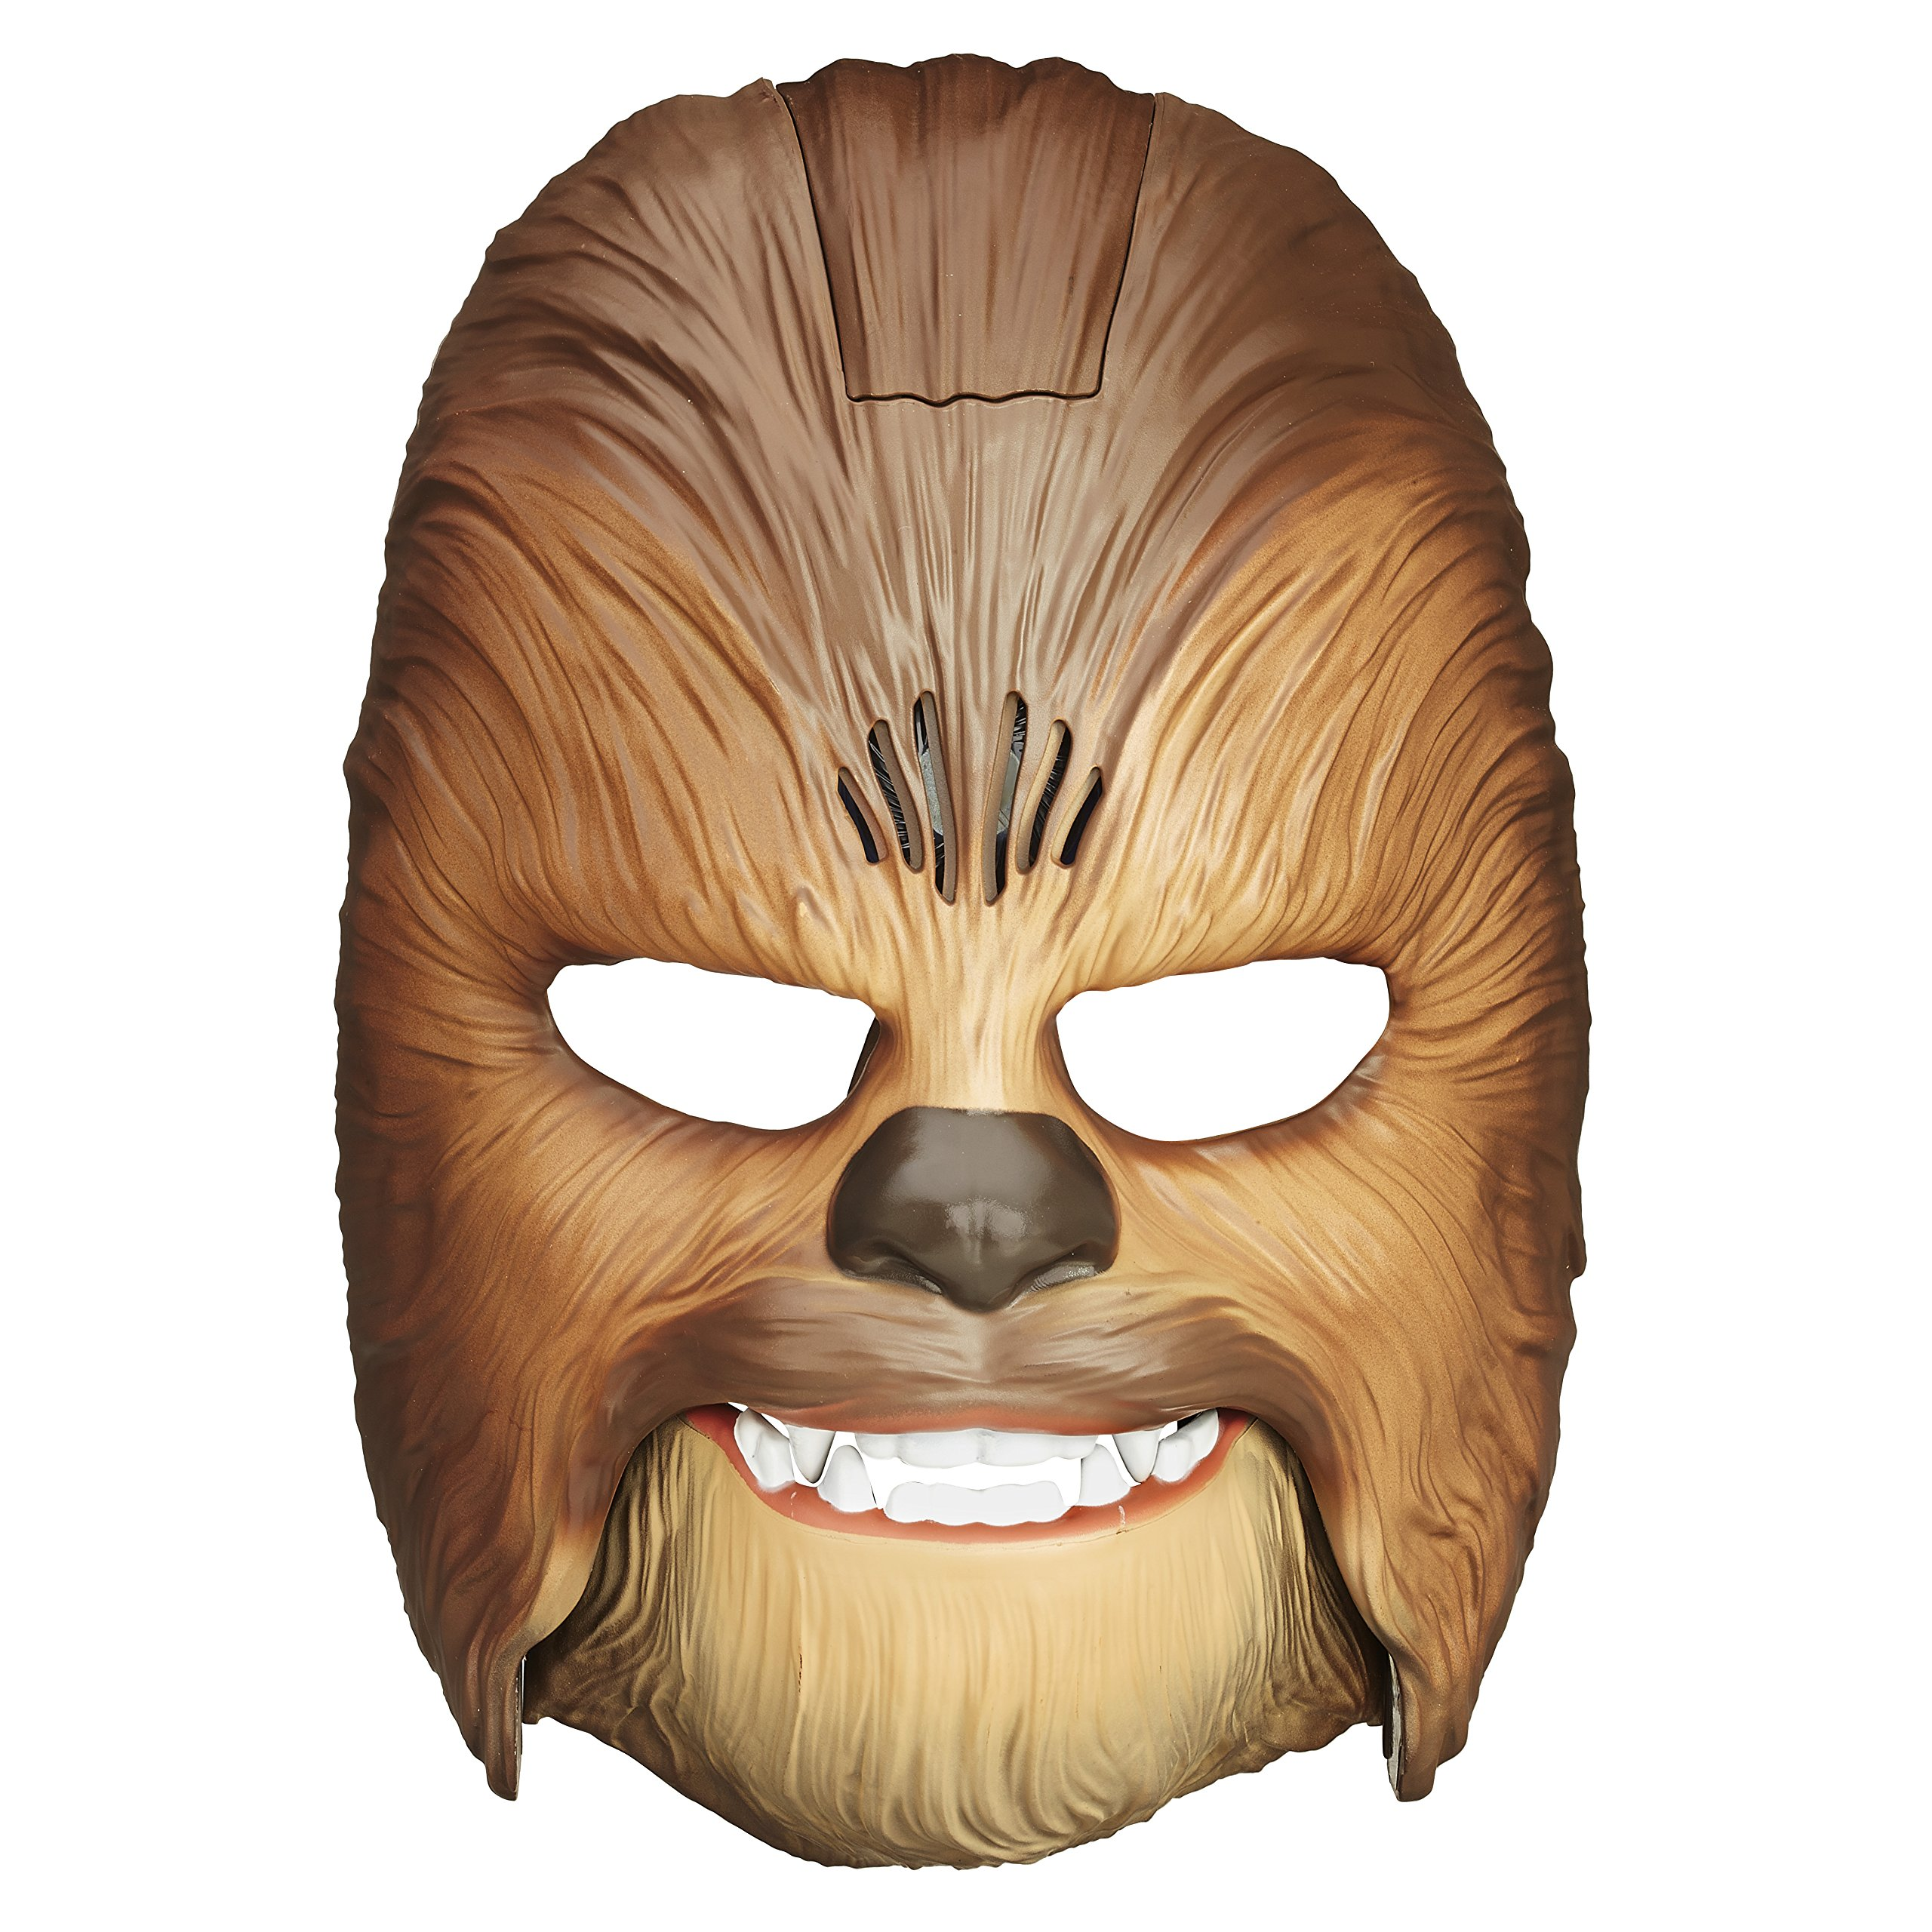 Star Wars Movie Roaring Chewbacca Wookiee Sounds Mask, Funny GRAAAAWR Noises, Sound Effects, Ages 5 and up, Brown (Amazon Exclusive) by Star Wars